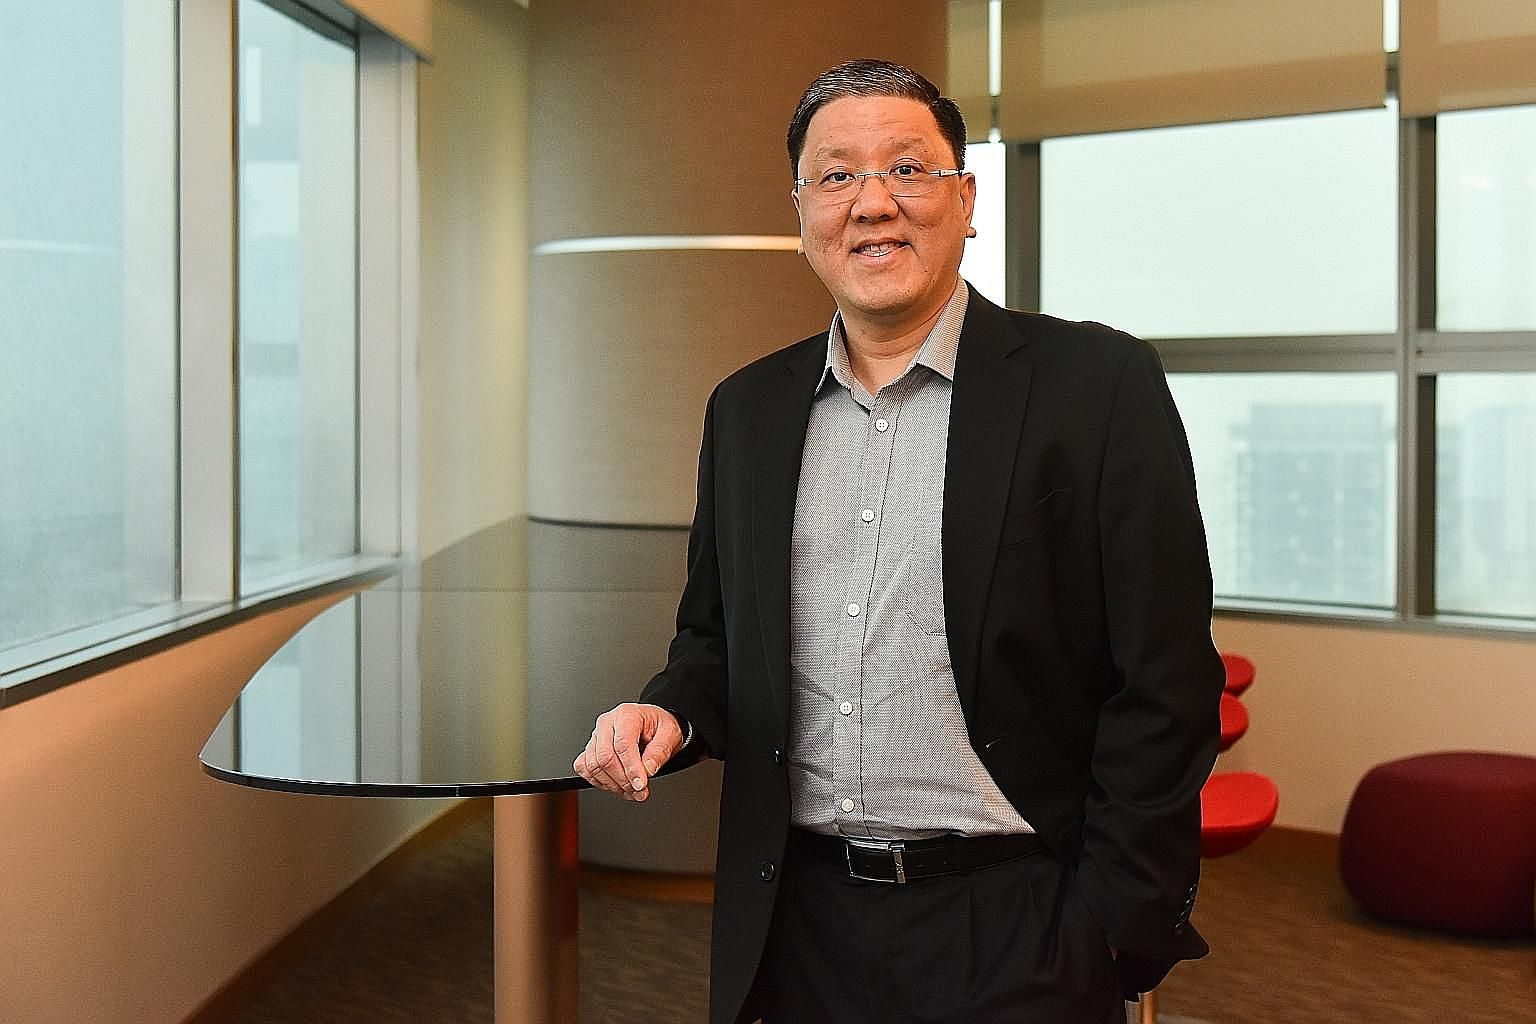 """Beneath Mr David Tan's jovial and disarming persona lies a stone-cold resolve to see projects through. His mantra, which he recites in a formulaic manner a few times during the interview, is: """"Vision, will, passion and perseverance."""""""